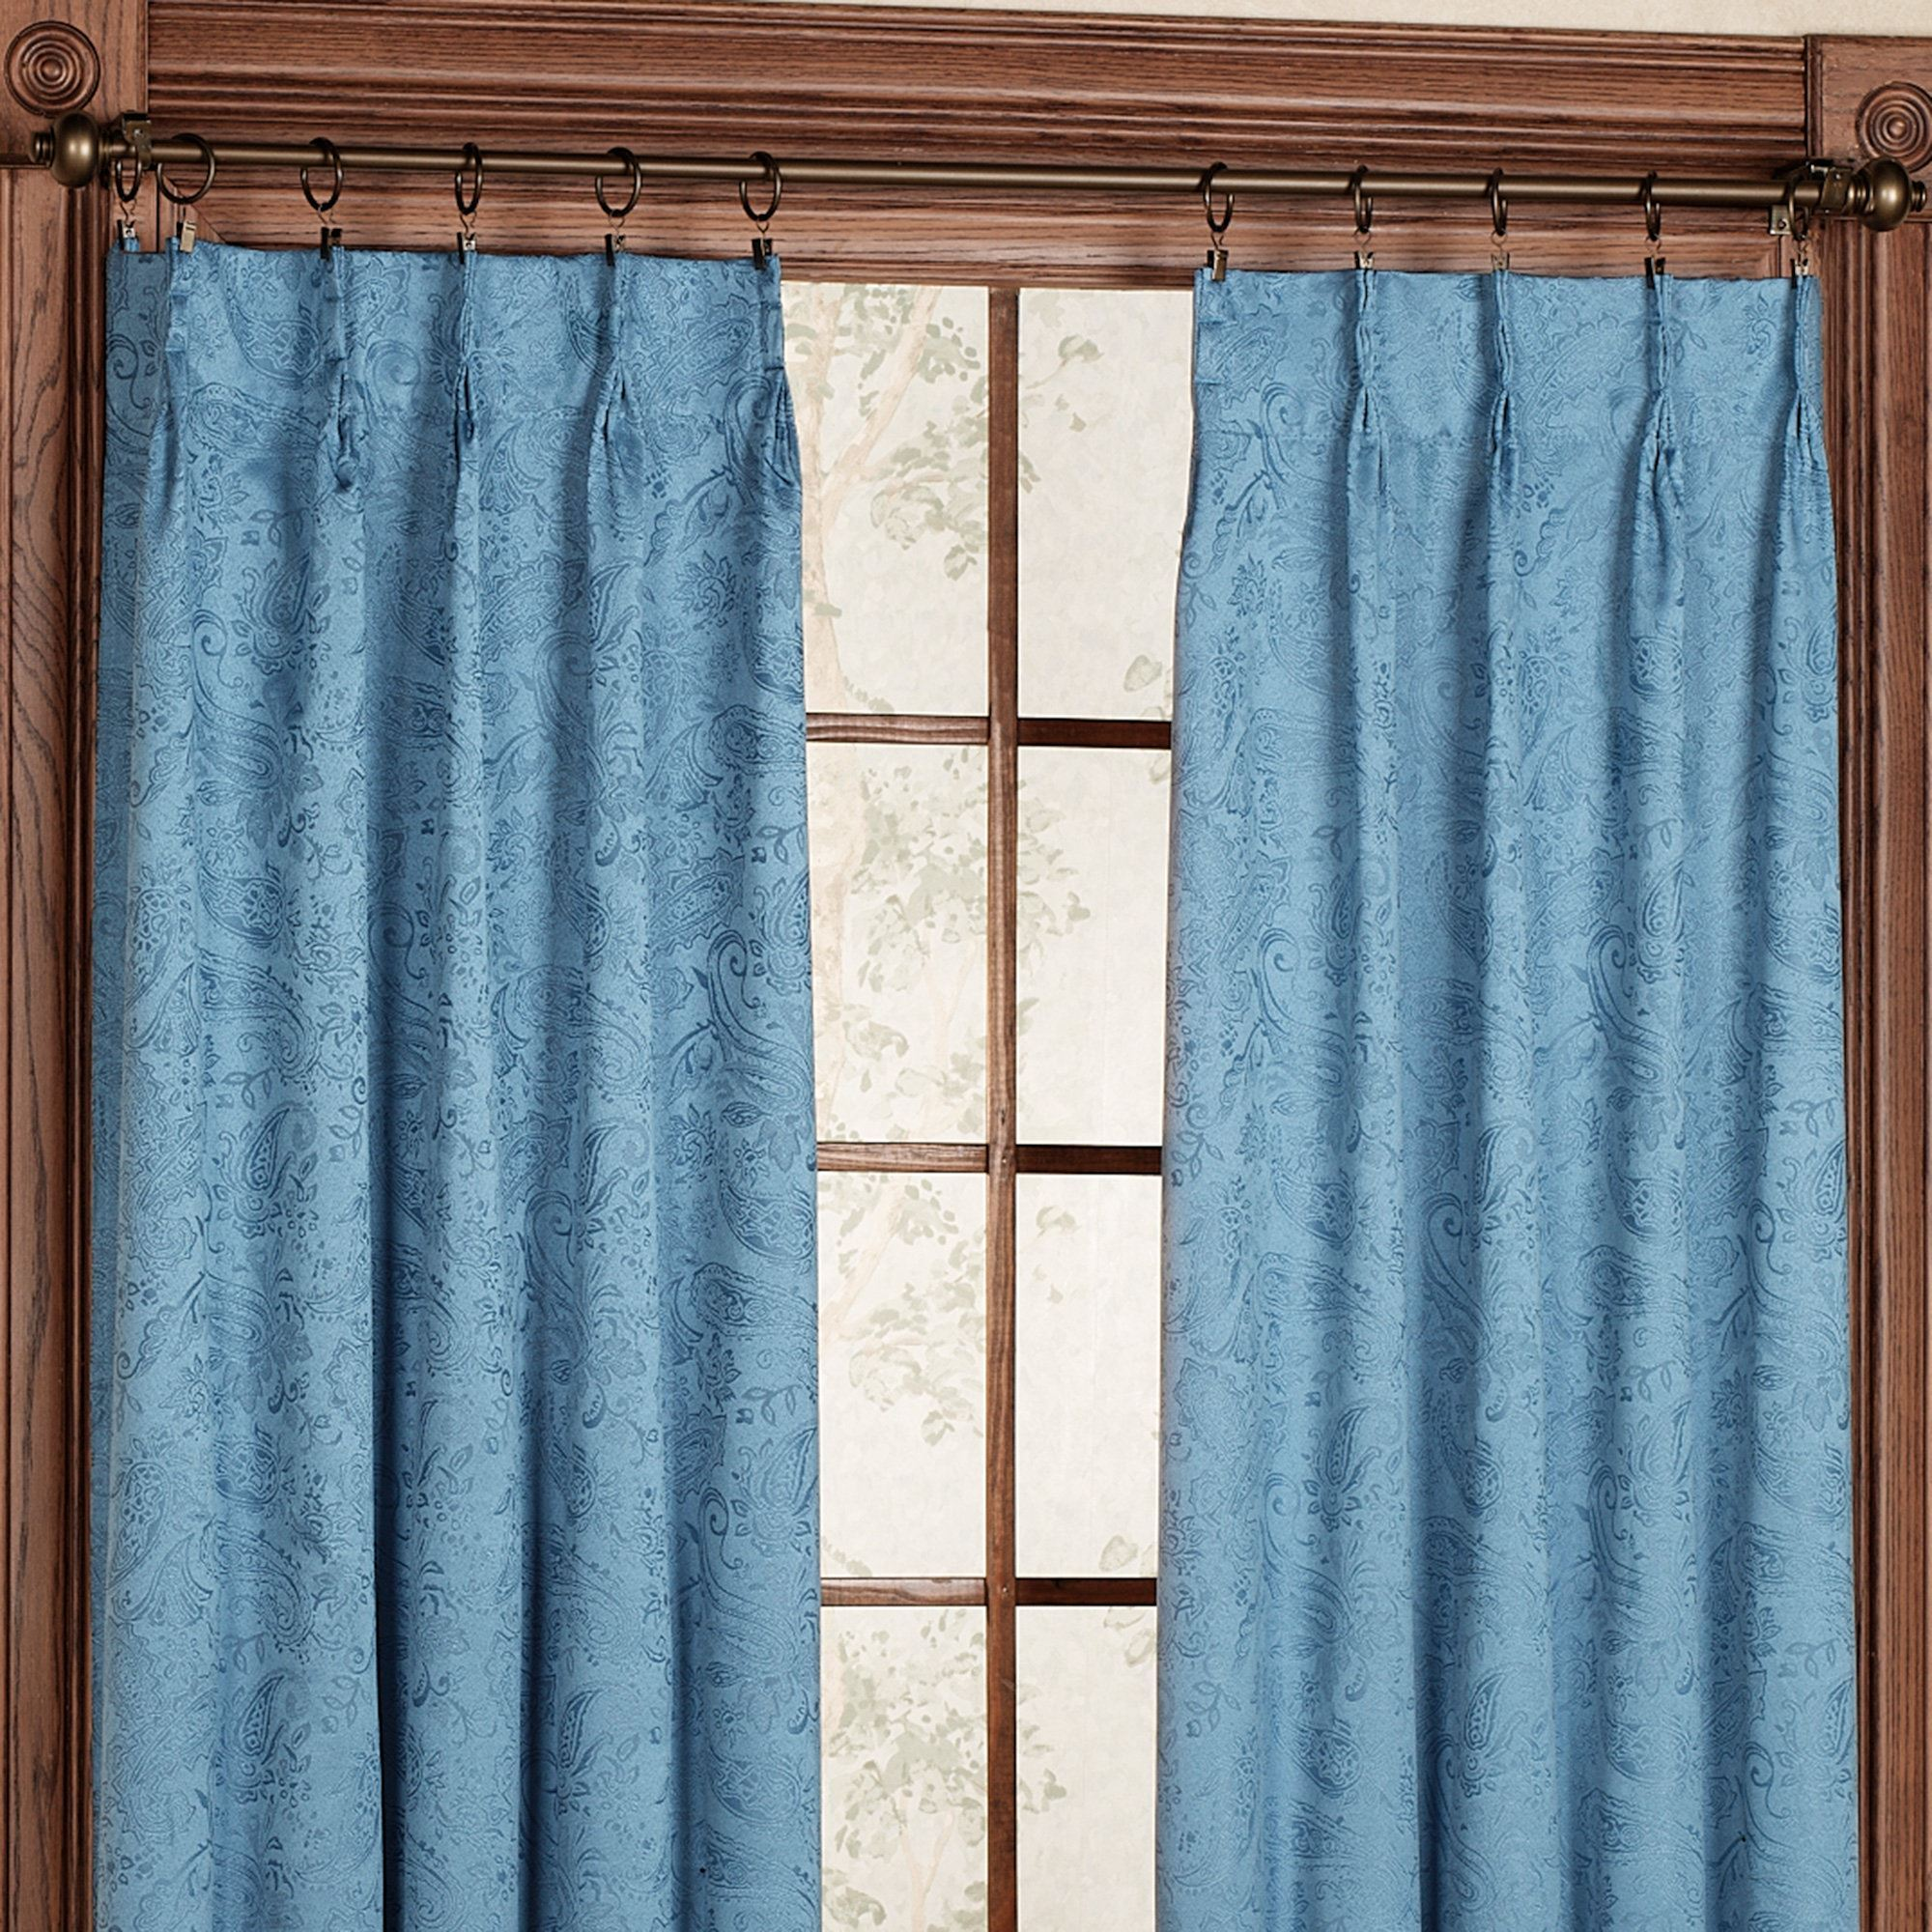 curtainsnoise curtain net eulanguages cancelling blocking curtains l noise